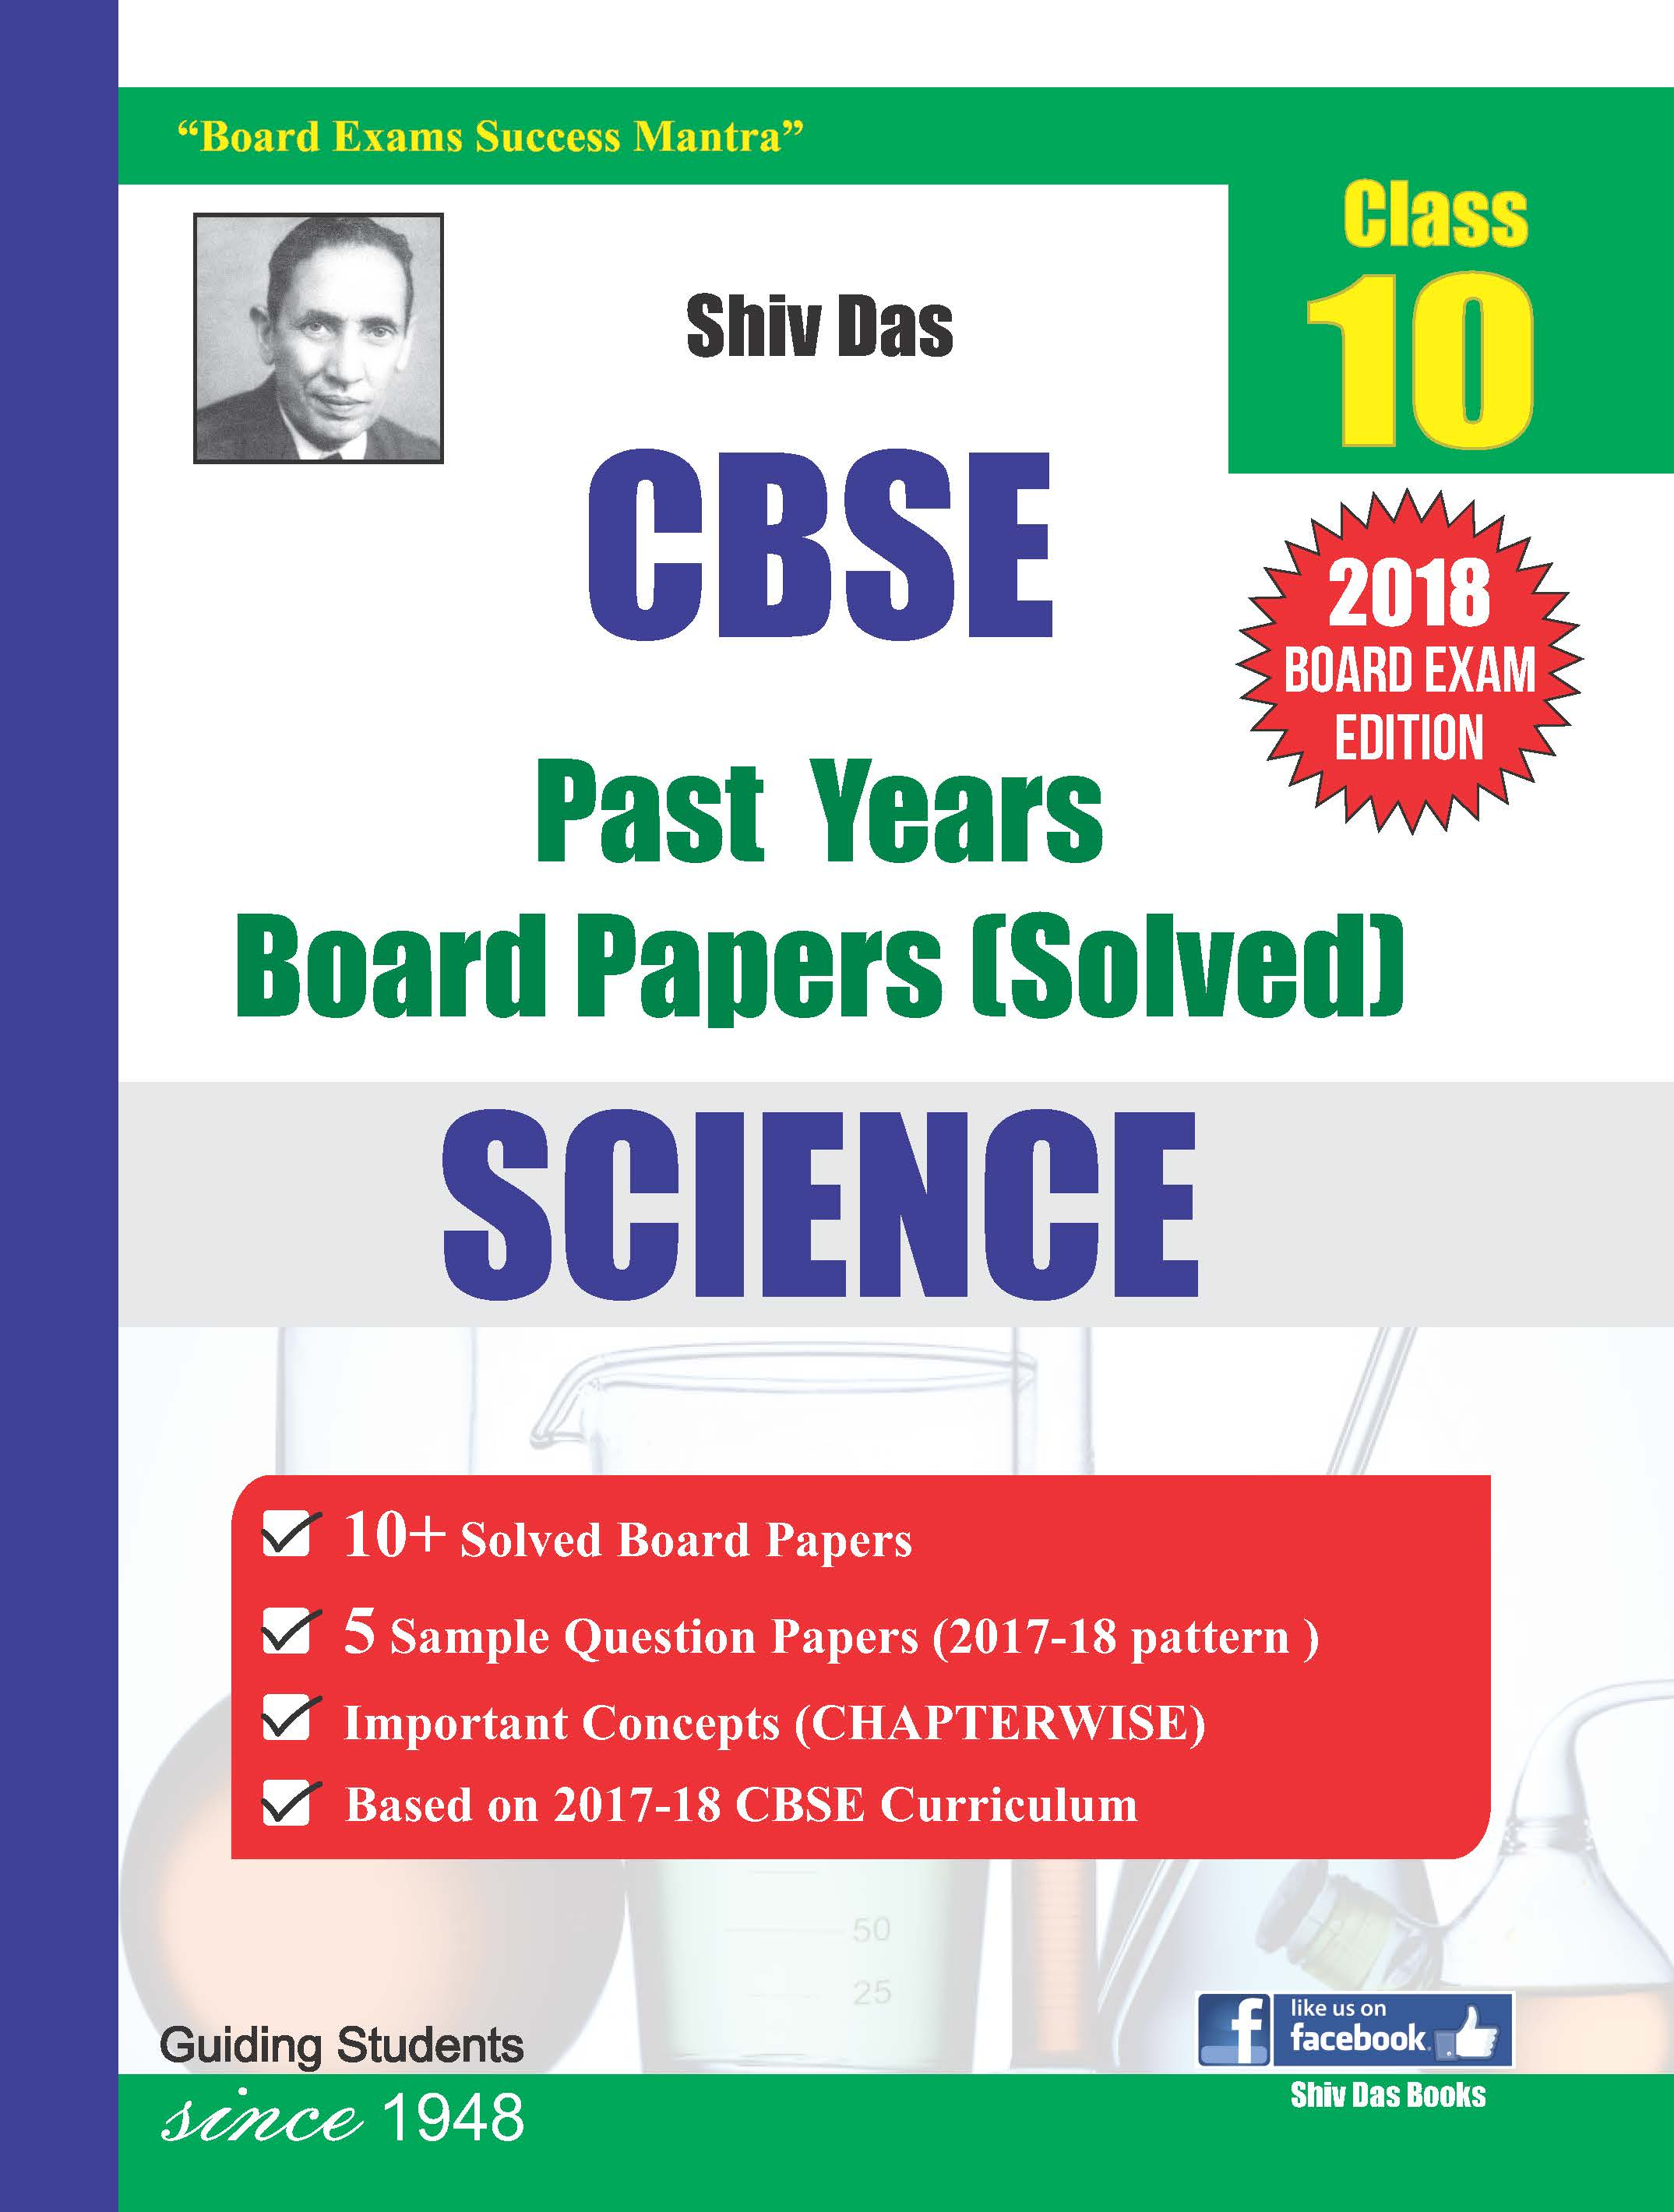 Class 10 CBSE Past Year Board Papers (Solved) Science